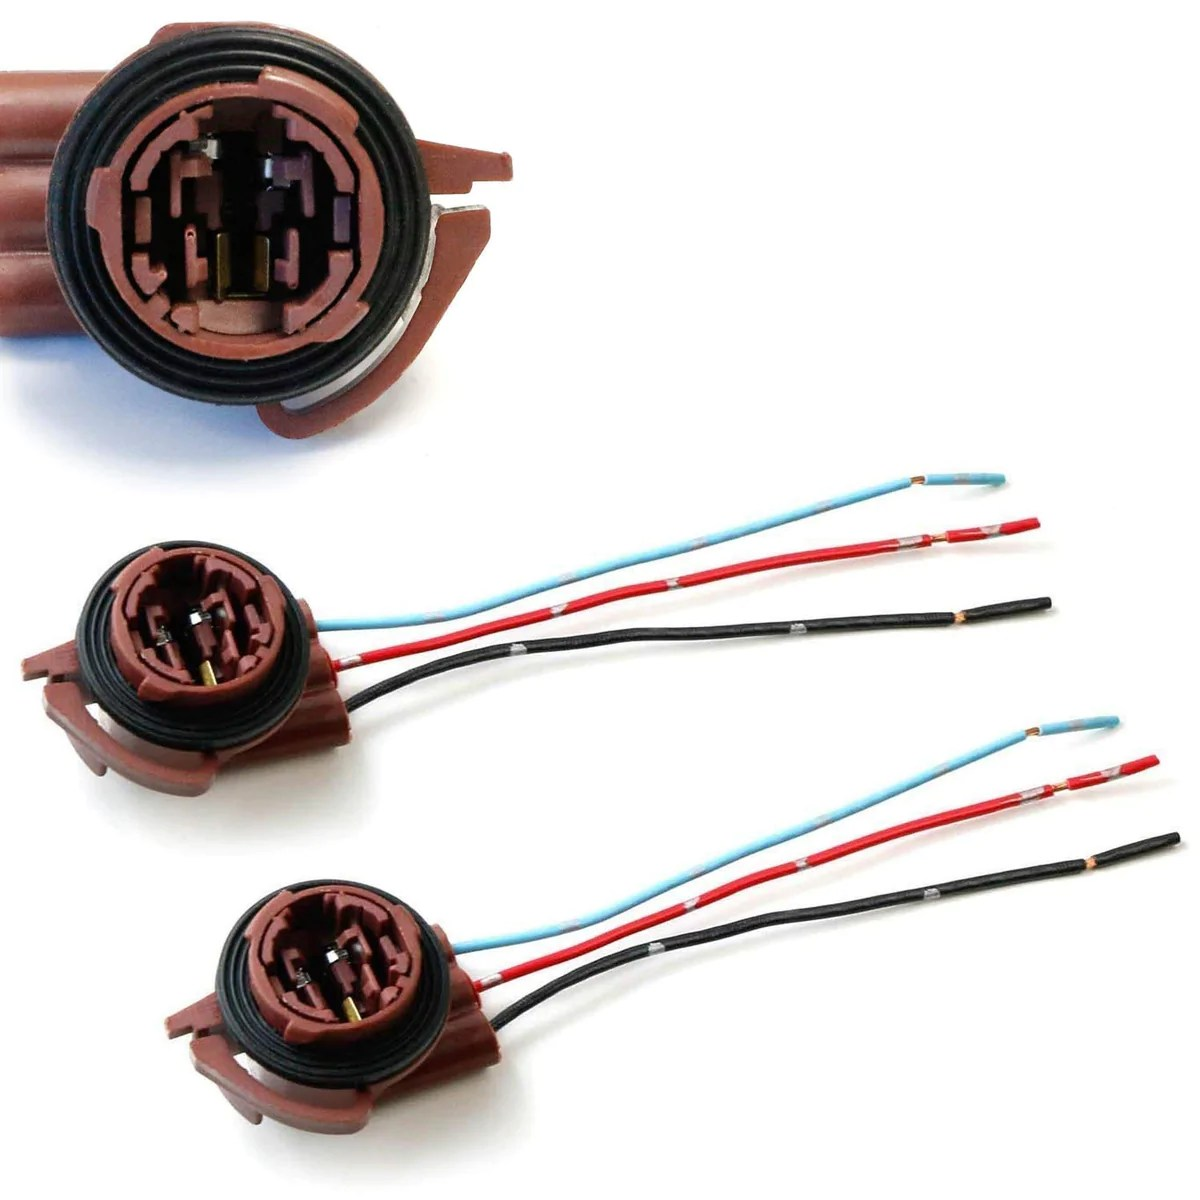 3156 3157 pre wired harness sockets for repair replacement ijdmtoy com [ 1200 x 1200 Pixel ]